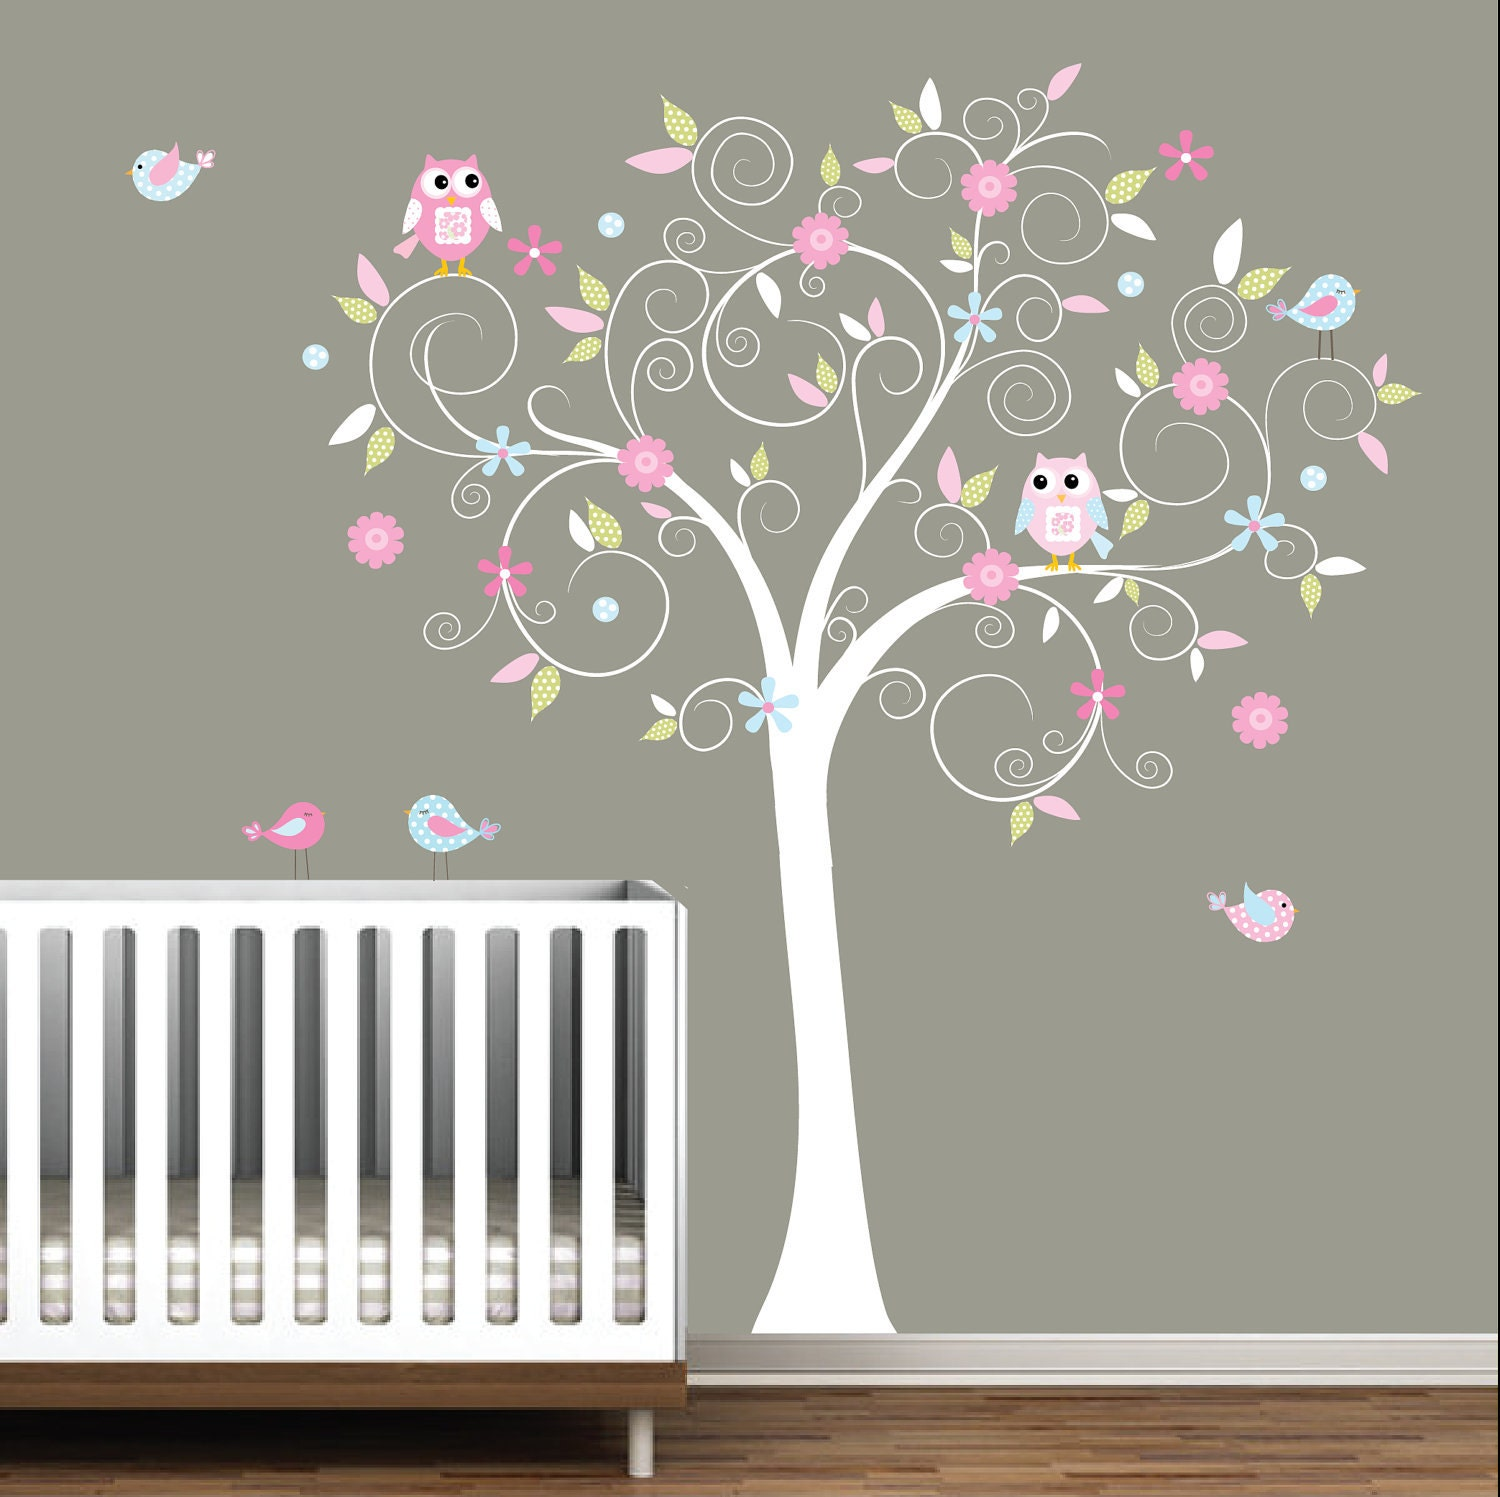 Wall Decor Stickers Nursery : Moved permanently